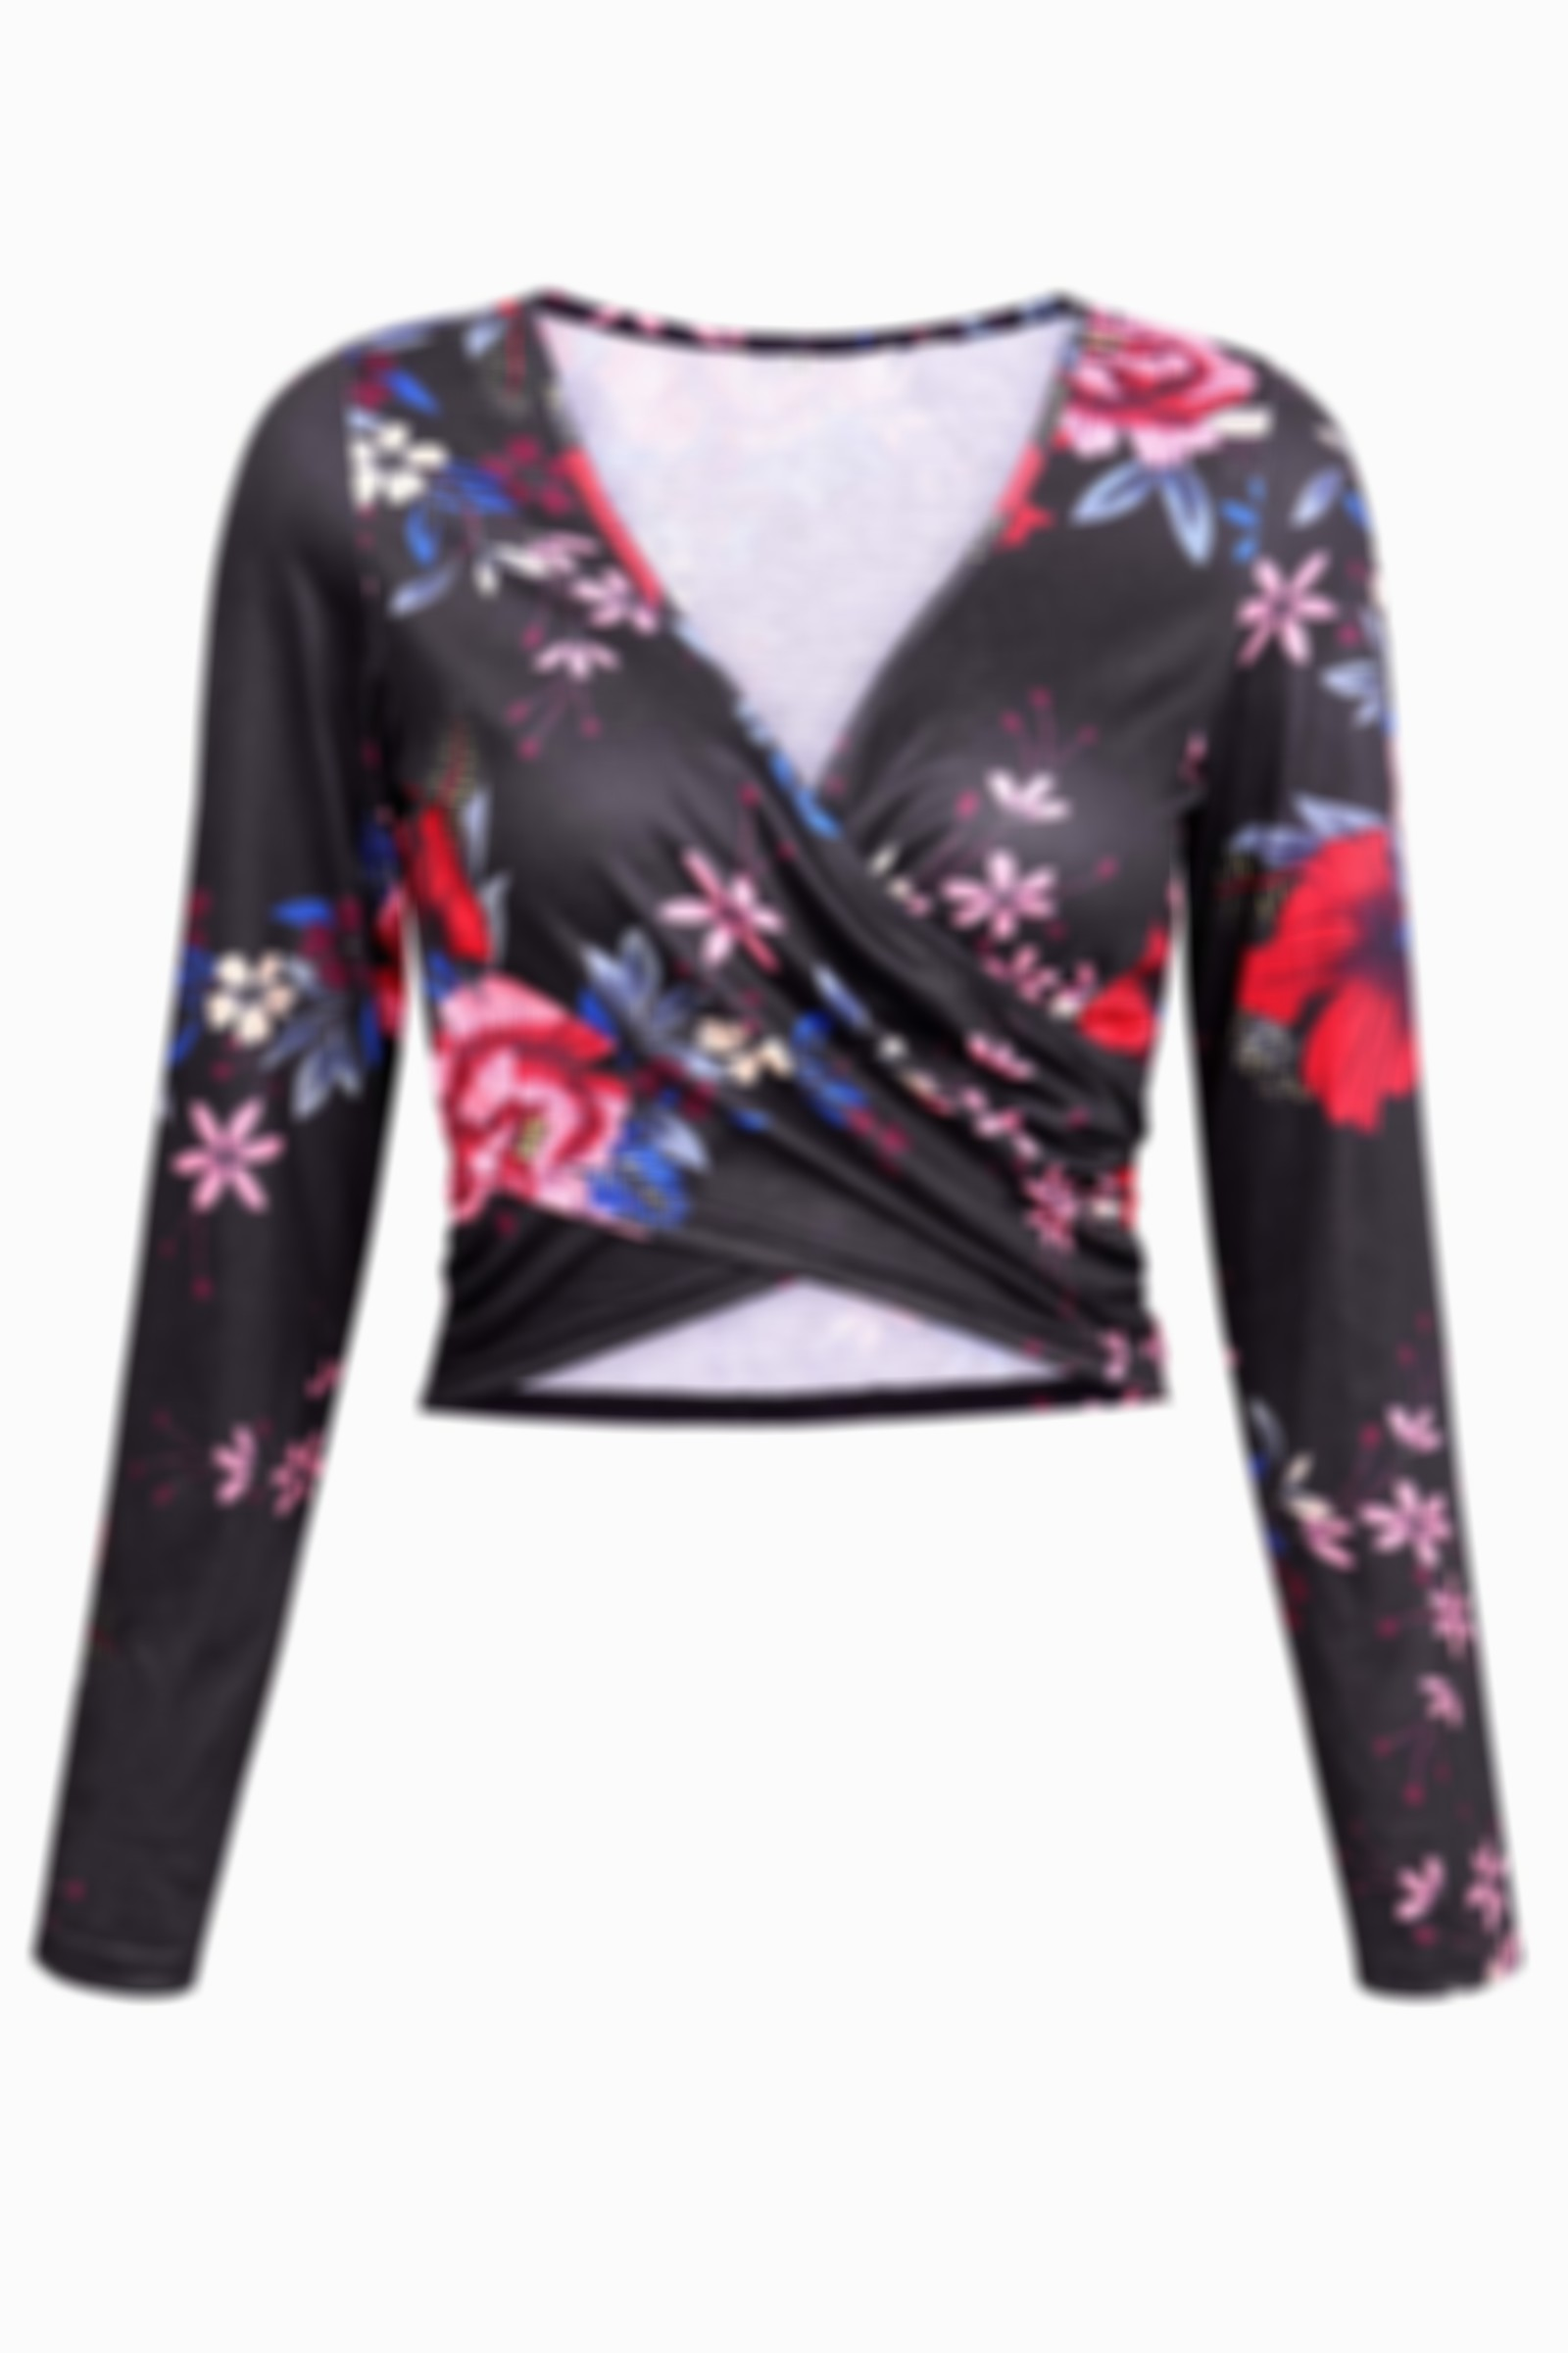 Rose Print V-Neck Cross Wrap Chest Long-Sleeved Umbilical Tight Top